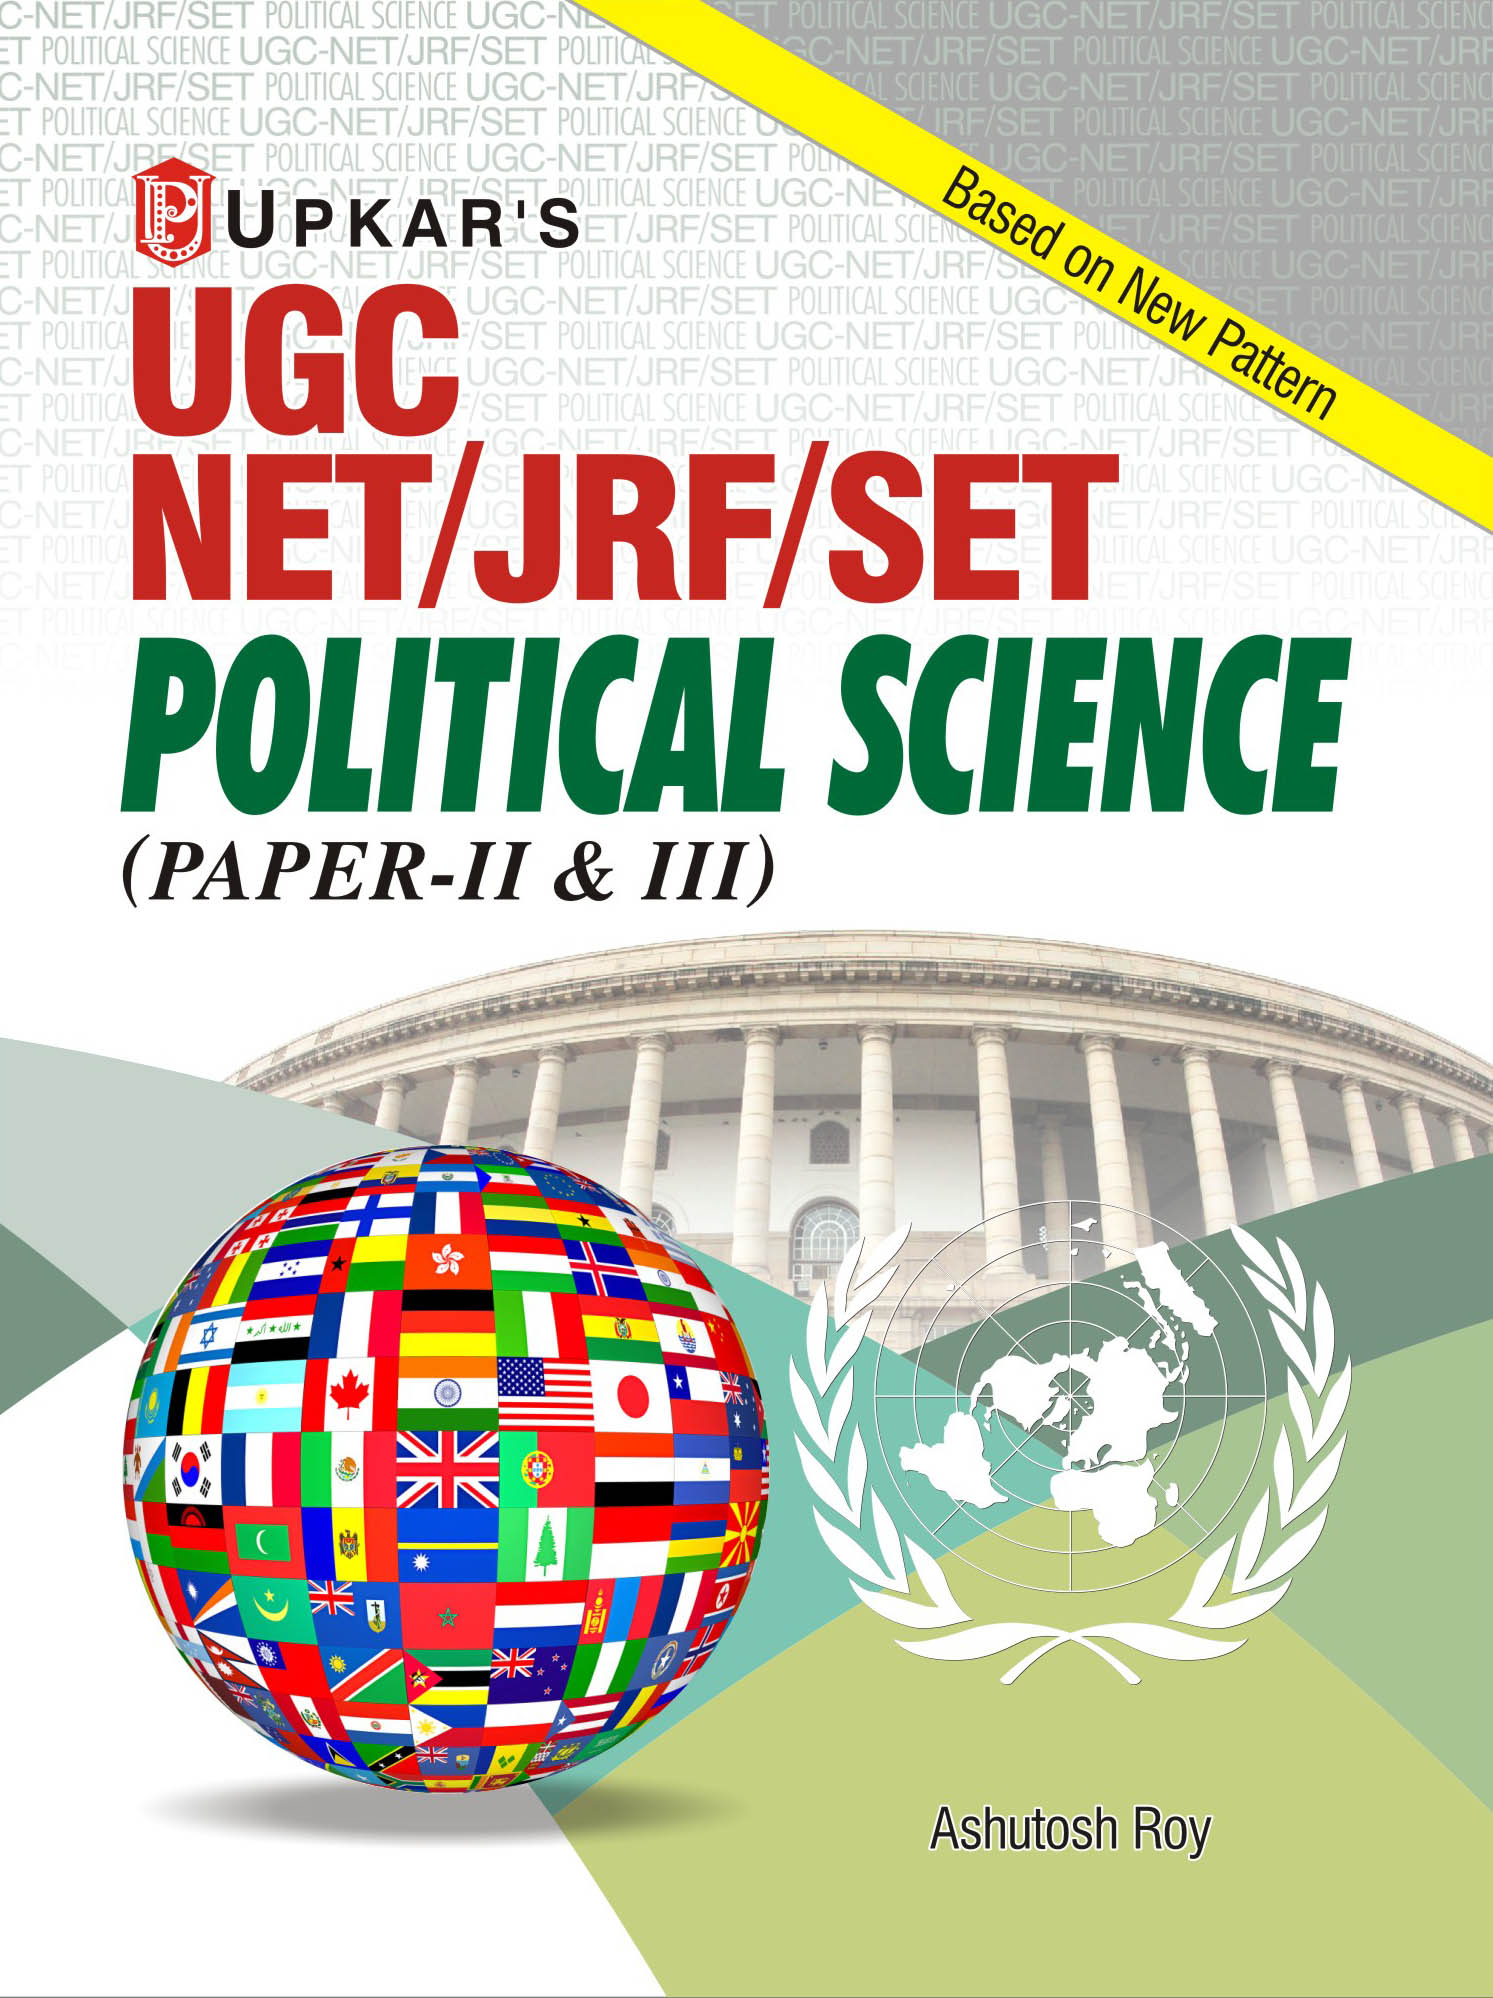 political science exam ii Ugc net political science important topics some of the recommended ugc net political science books are: ugc net/set (jrf & ls) political science paper ii & iii trueman's ugc net political science.